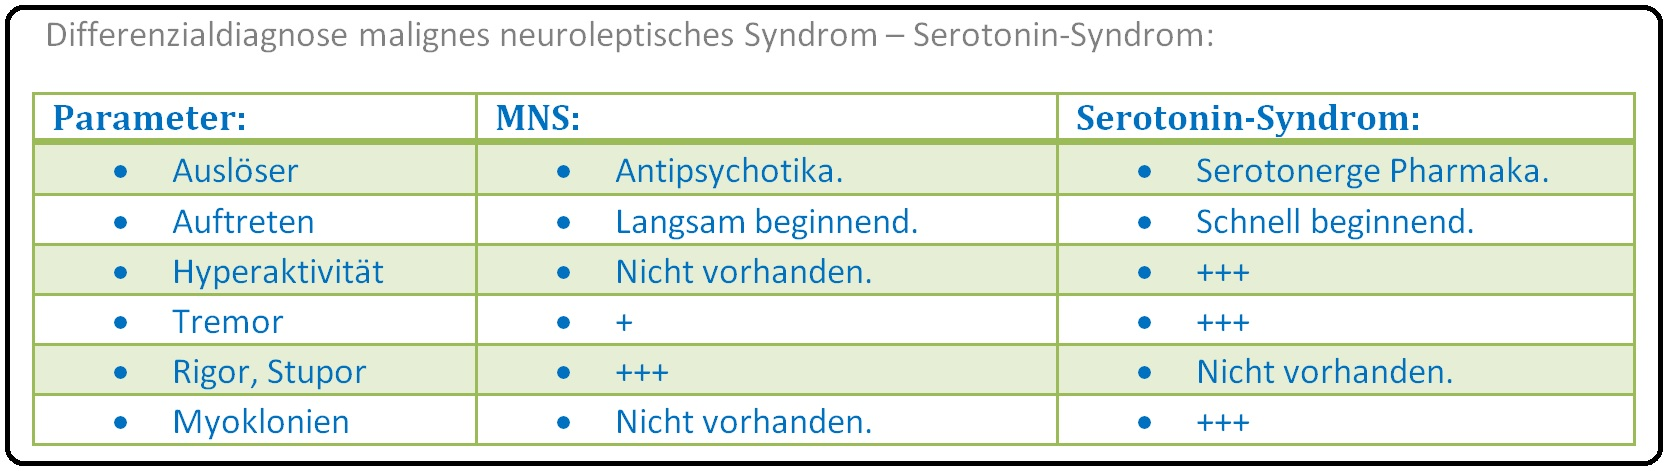 628 Differenzialdiagnose malignes neuroleptisches Syndrom   Serotonerges Syndrom